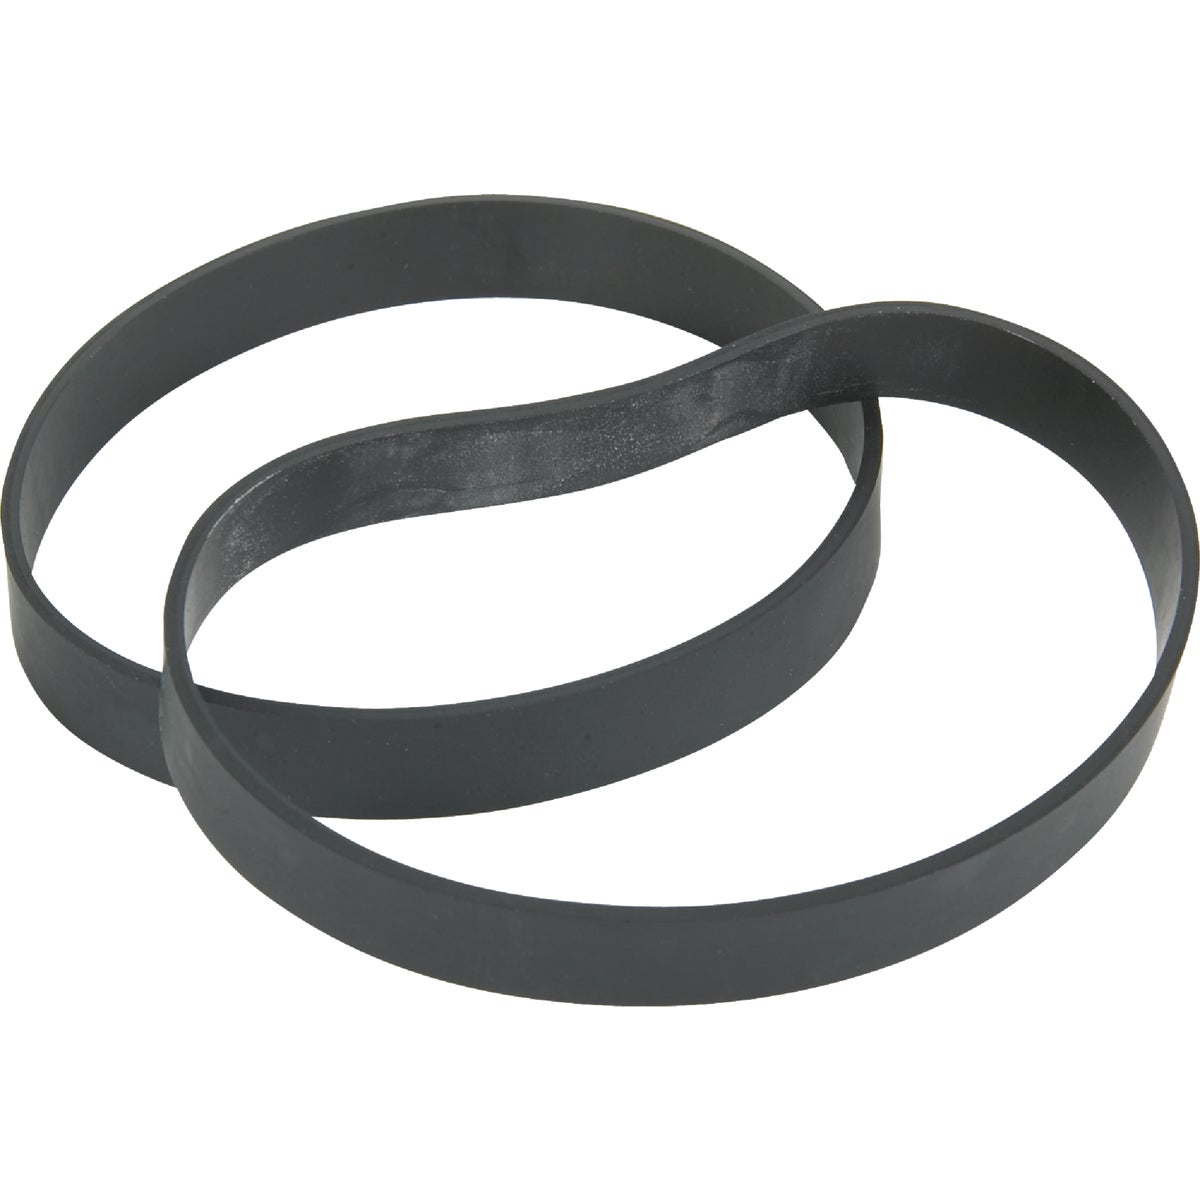 VACUUM CLEANER BELT - 40201160 by Hoover Co